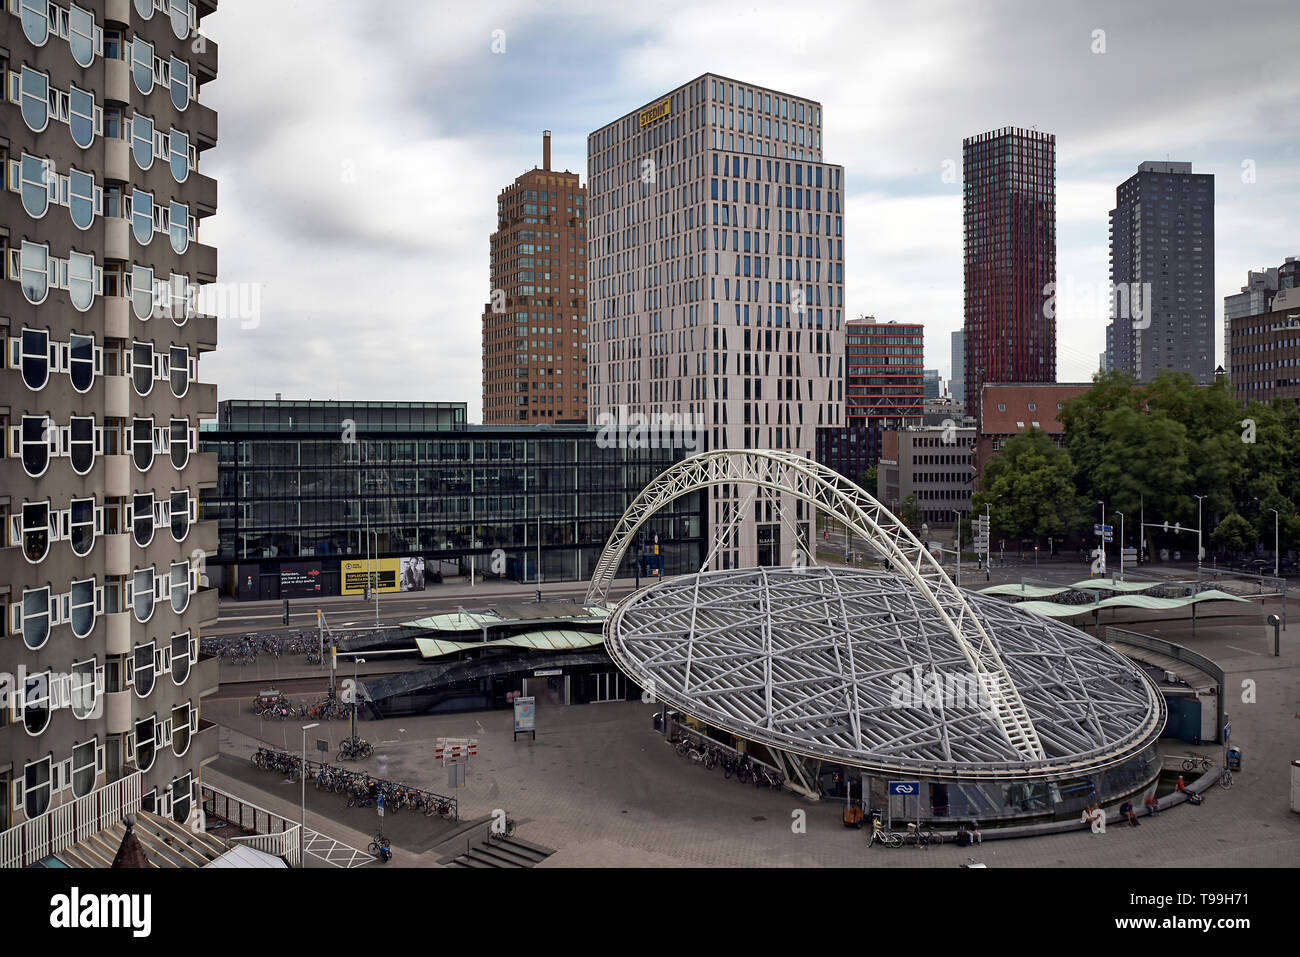 Blaak station, pencil flat and cube houses in the city of Rotterdam - Stock Image